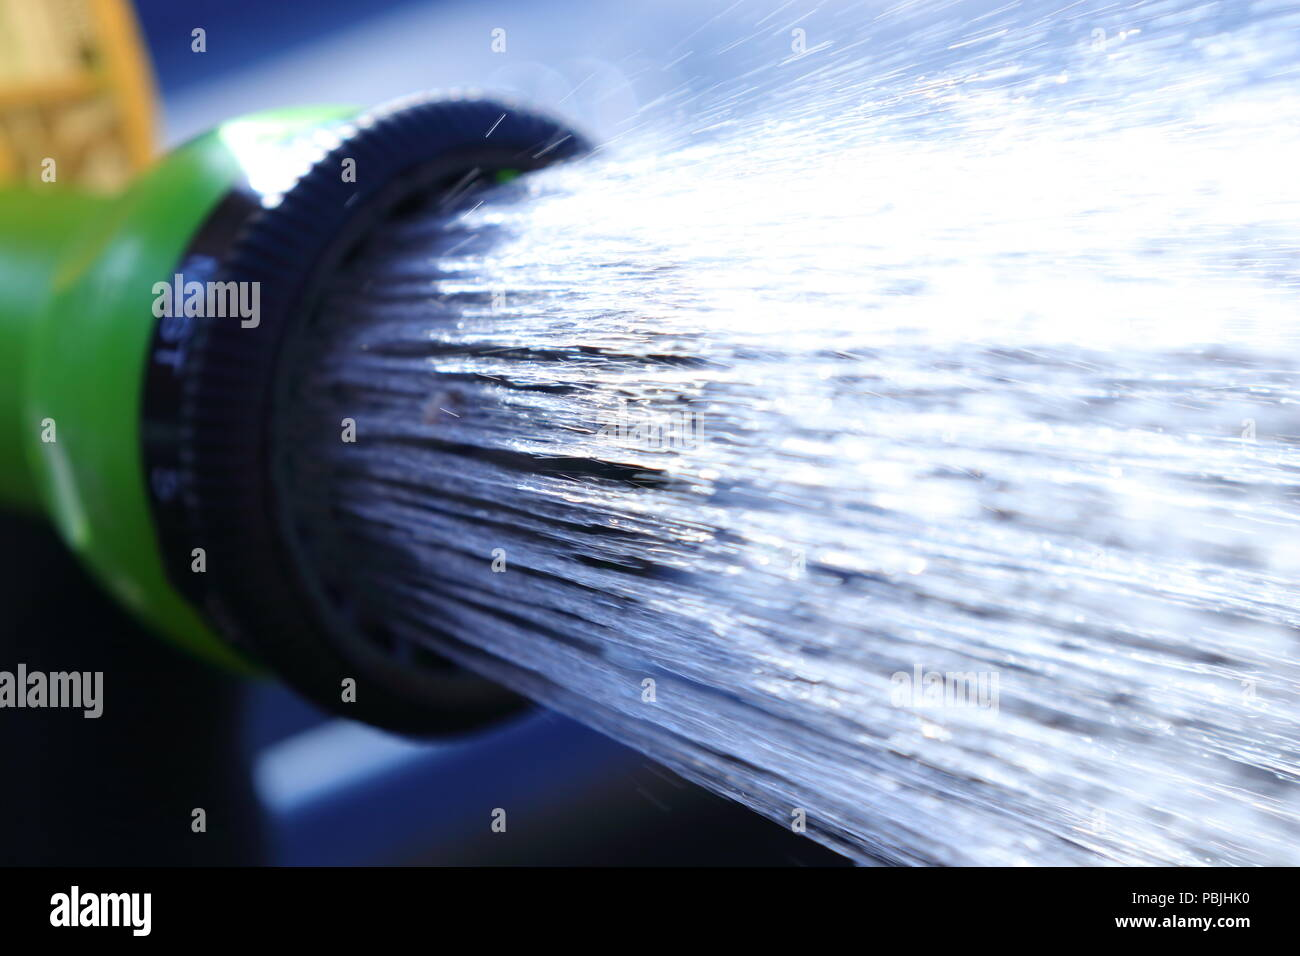 A shower of water from a hosepipe before the proposed hosepipe ban comes into effect. - Stock Image